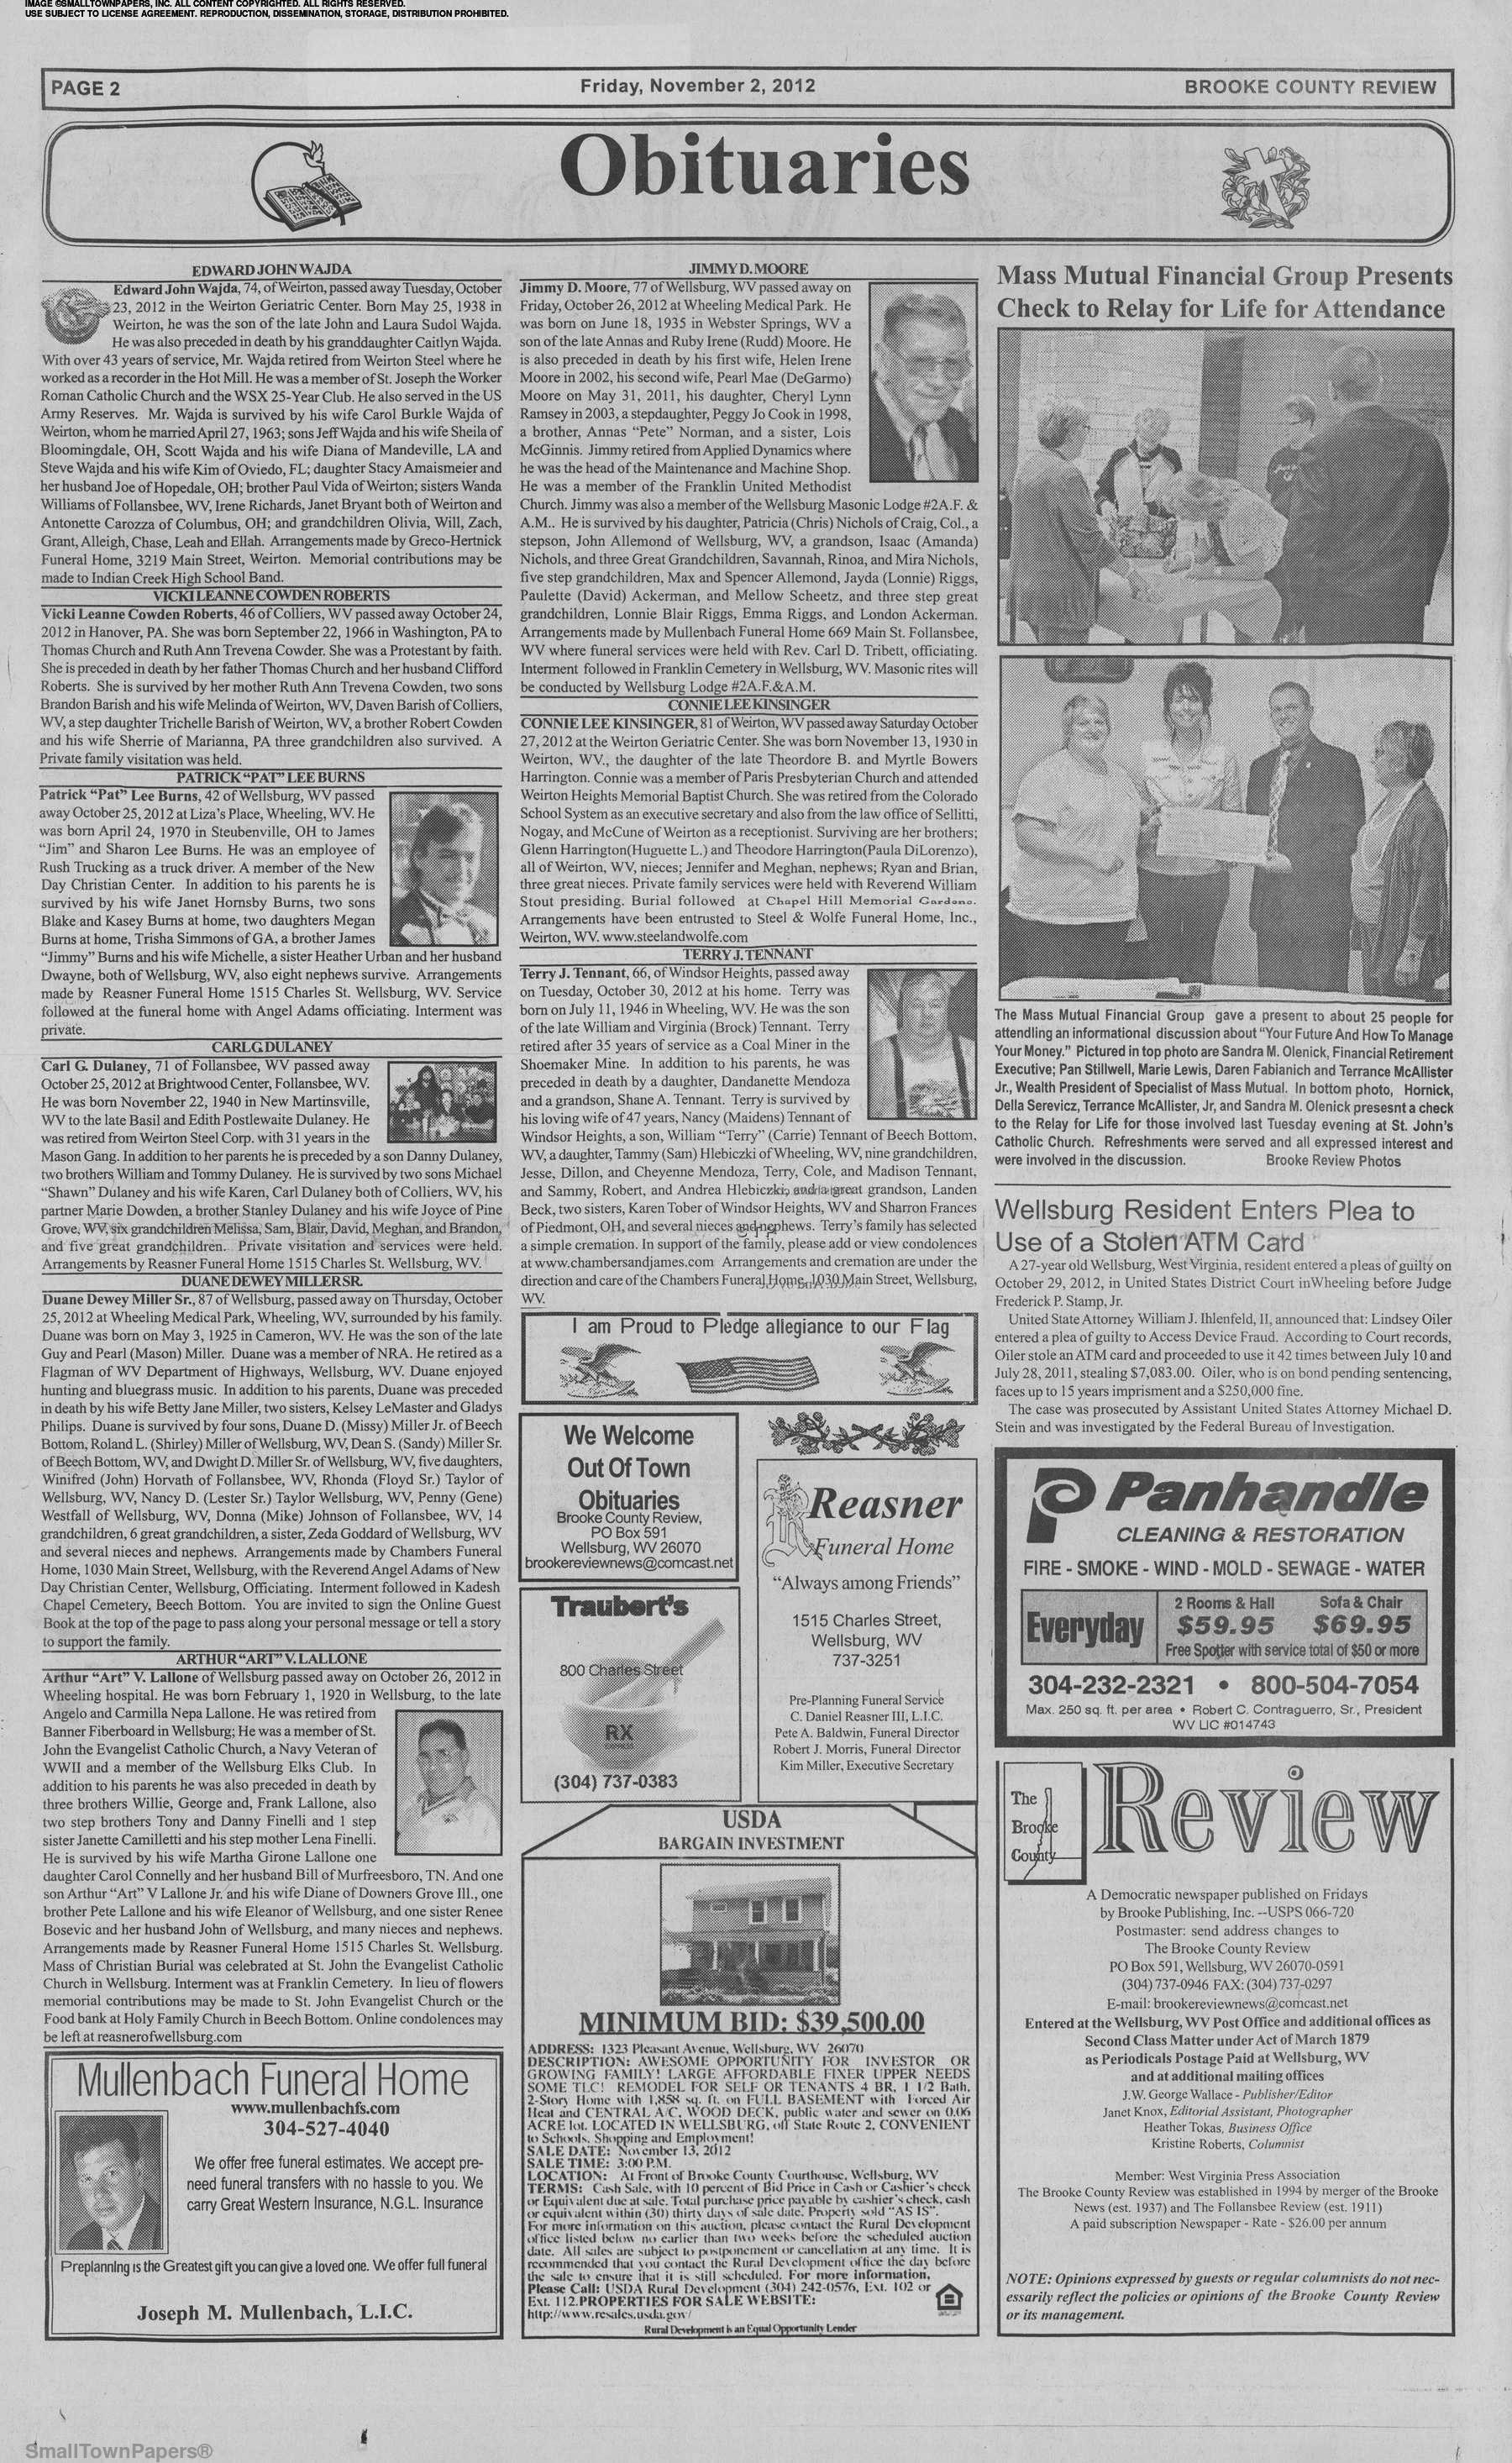 The Brooke County Review November 2 2012 Page 2